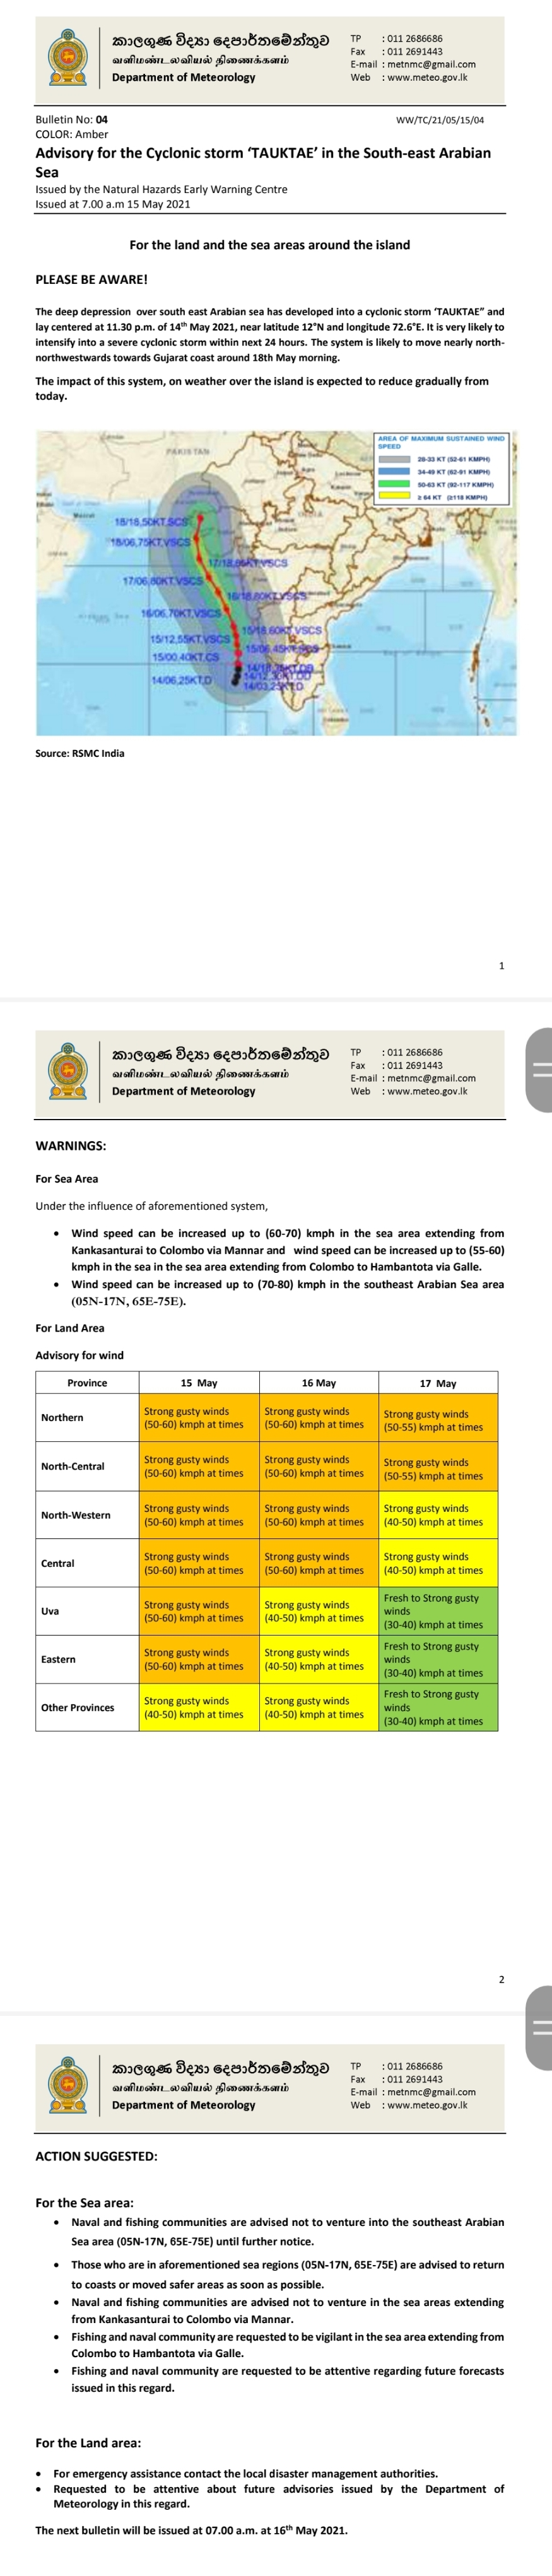 Advisory for the Cyclonic storm 'TAUKTAE' in the South-east Arabian Sea